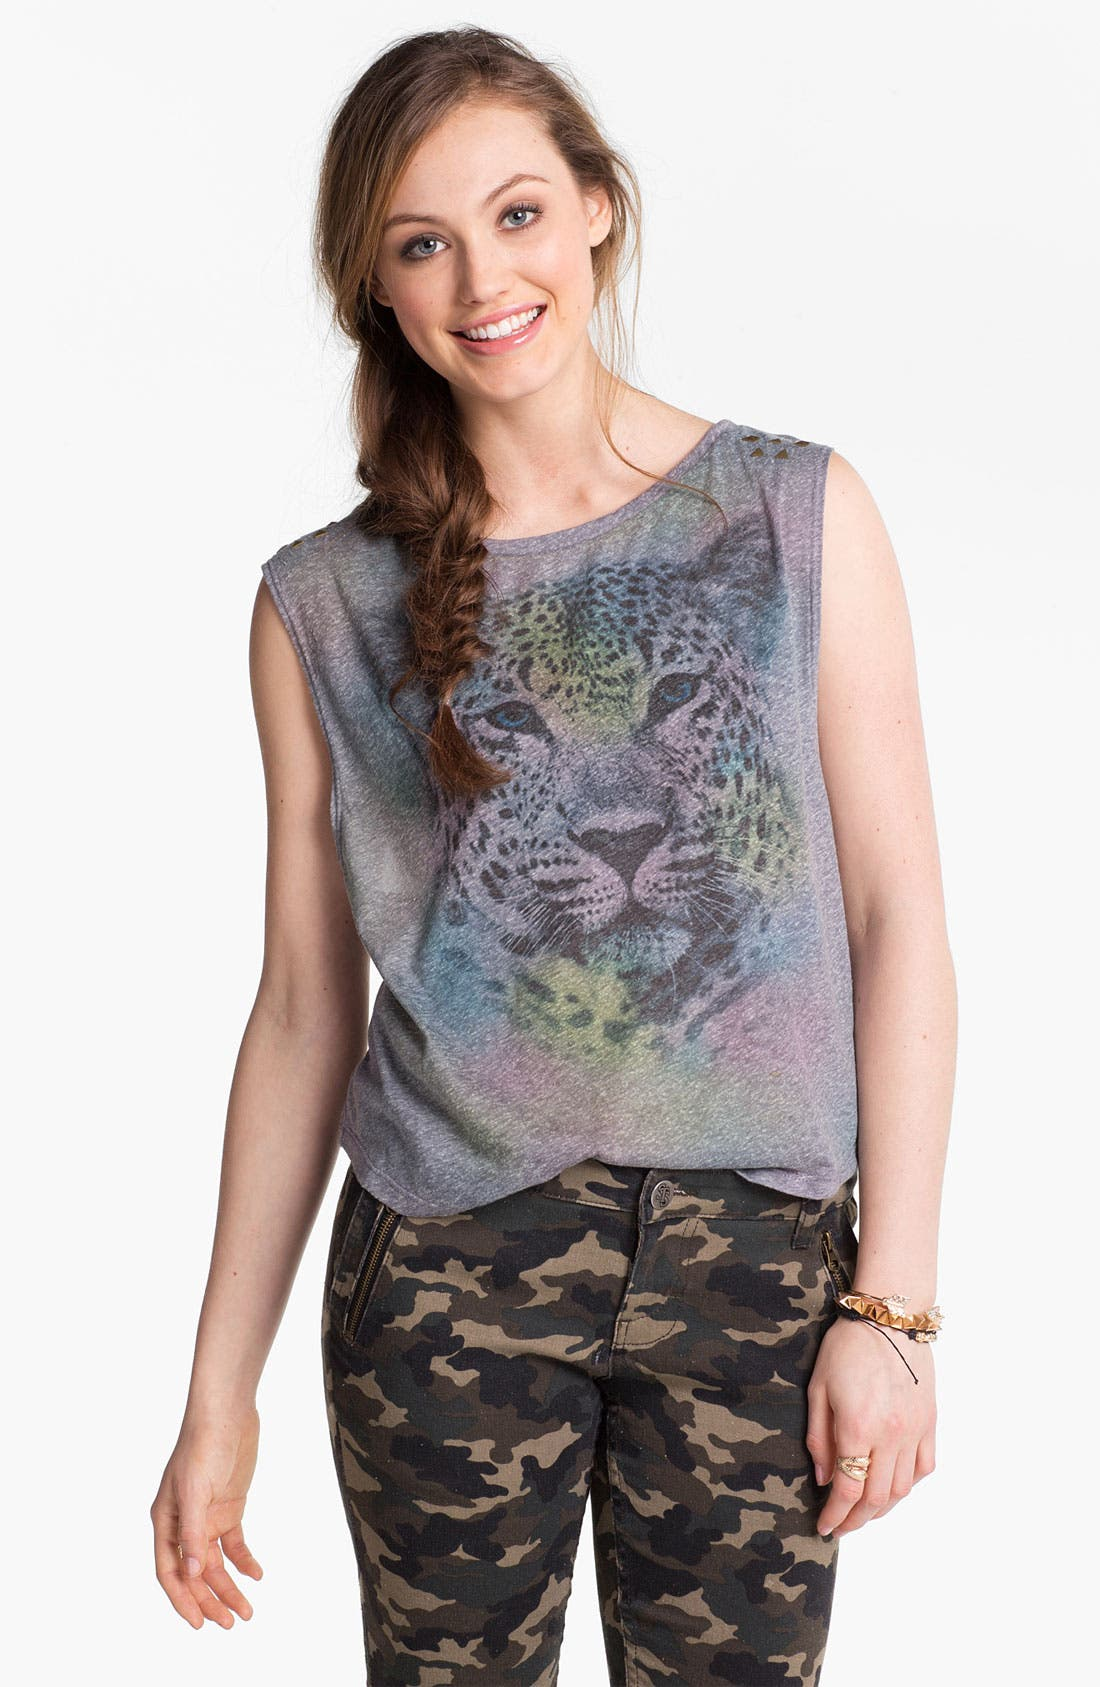 Alternate Image 1 Selected - Lush Studded Cheetah Graphic Muscle Tee (Juniors)